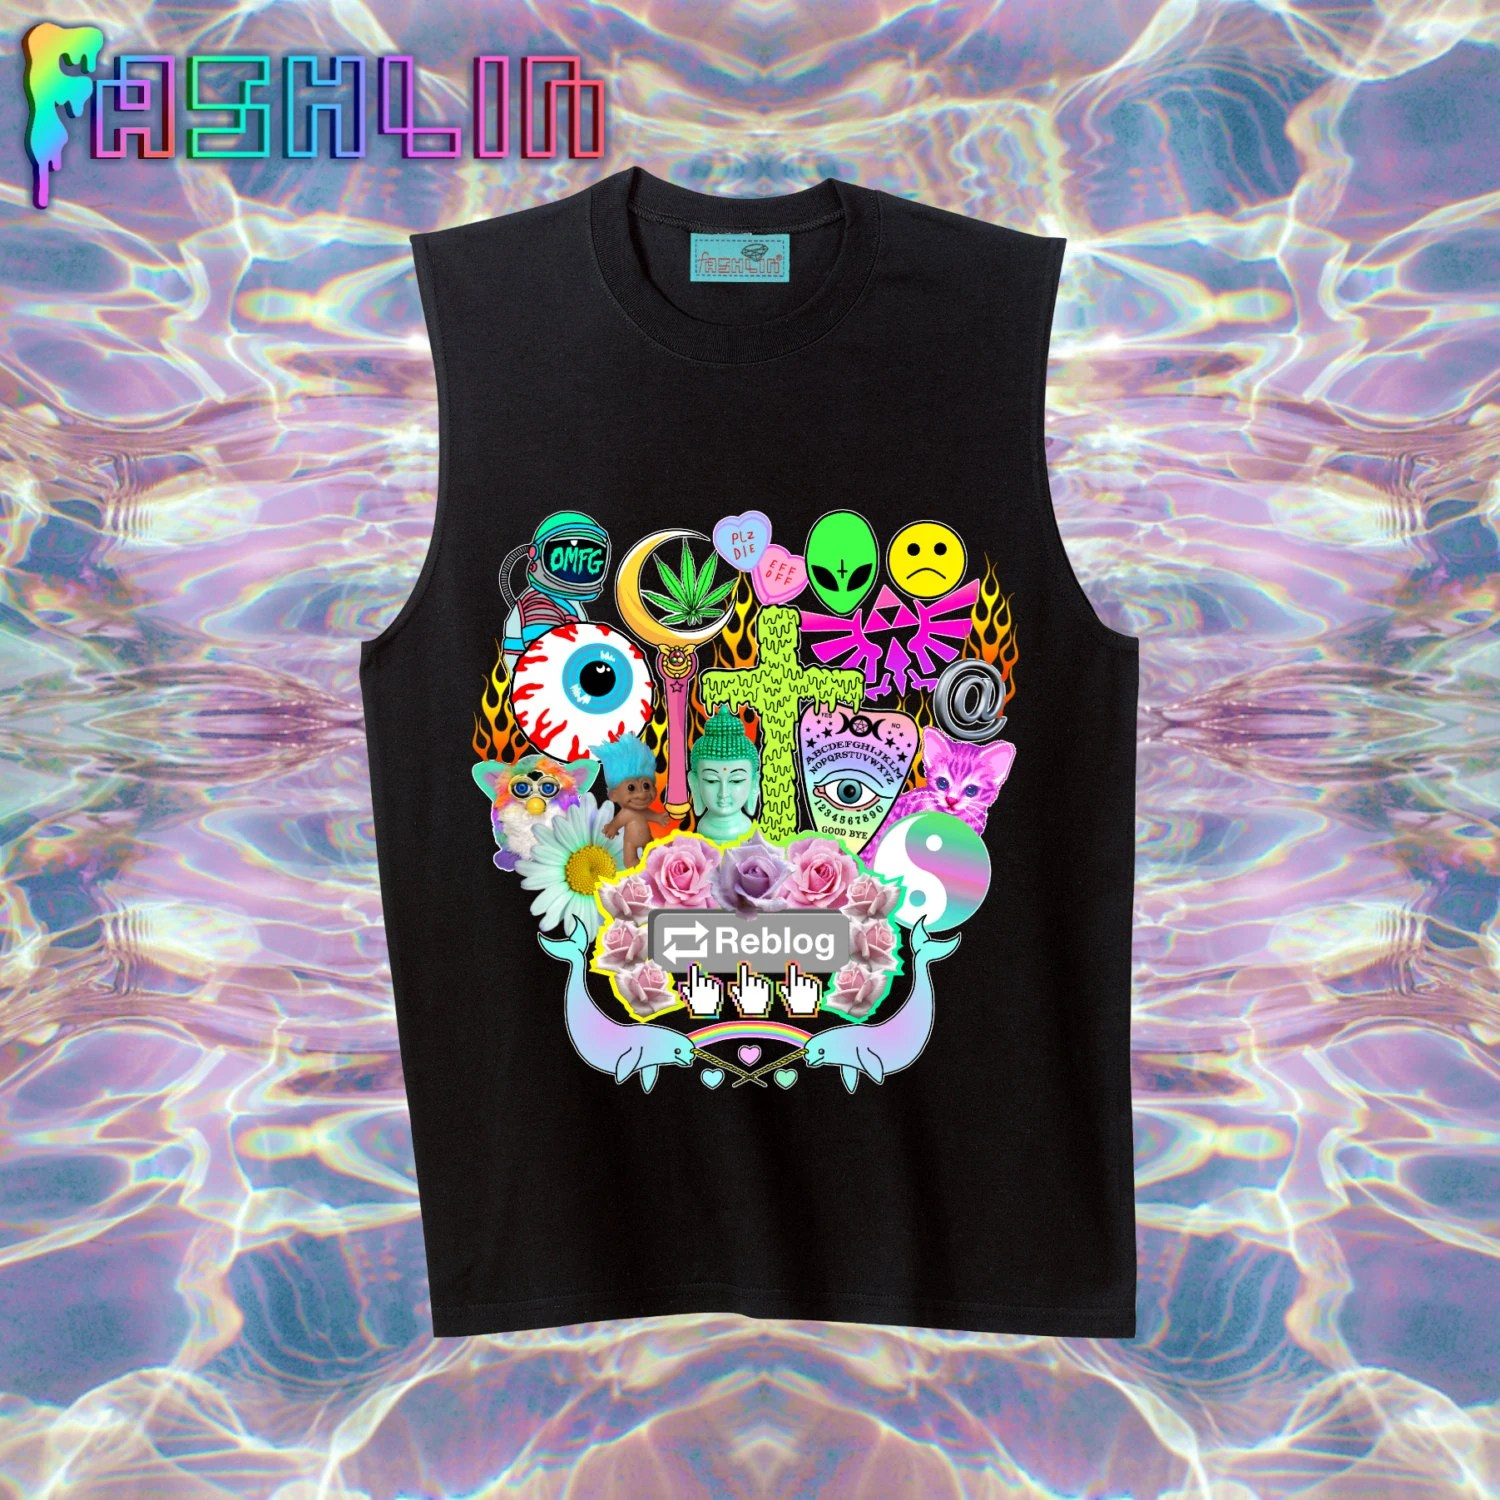 UNISEX Reblog 90s Kawaii Seapunk Tumblr Muscle Tee in Black // Pastel Grunge // Sailor Moon x Zelda // fASHLIN